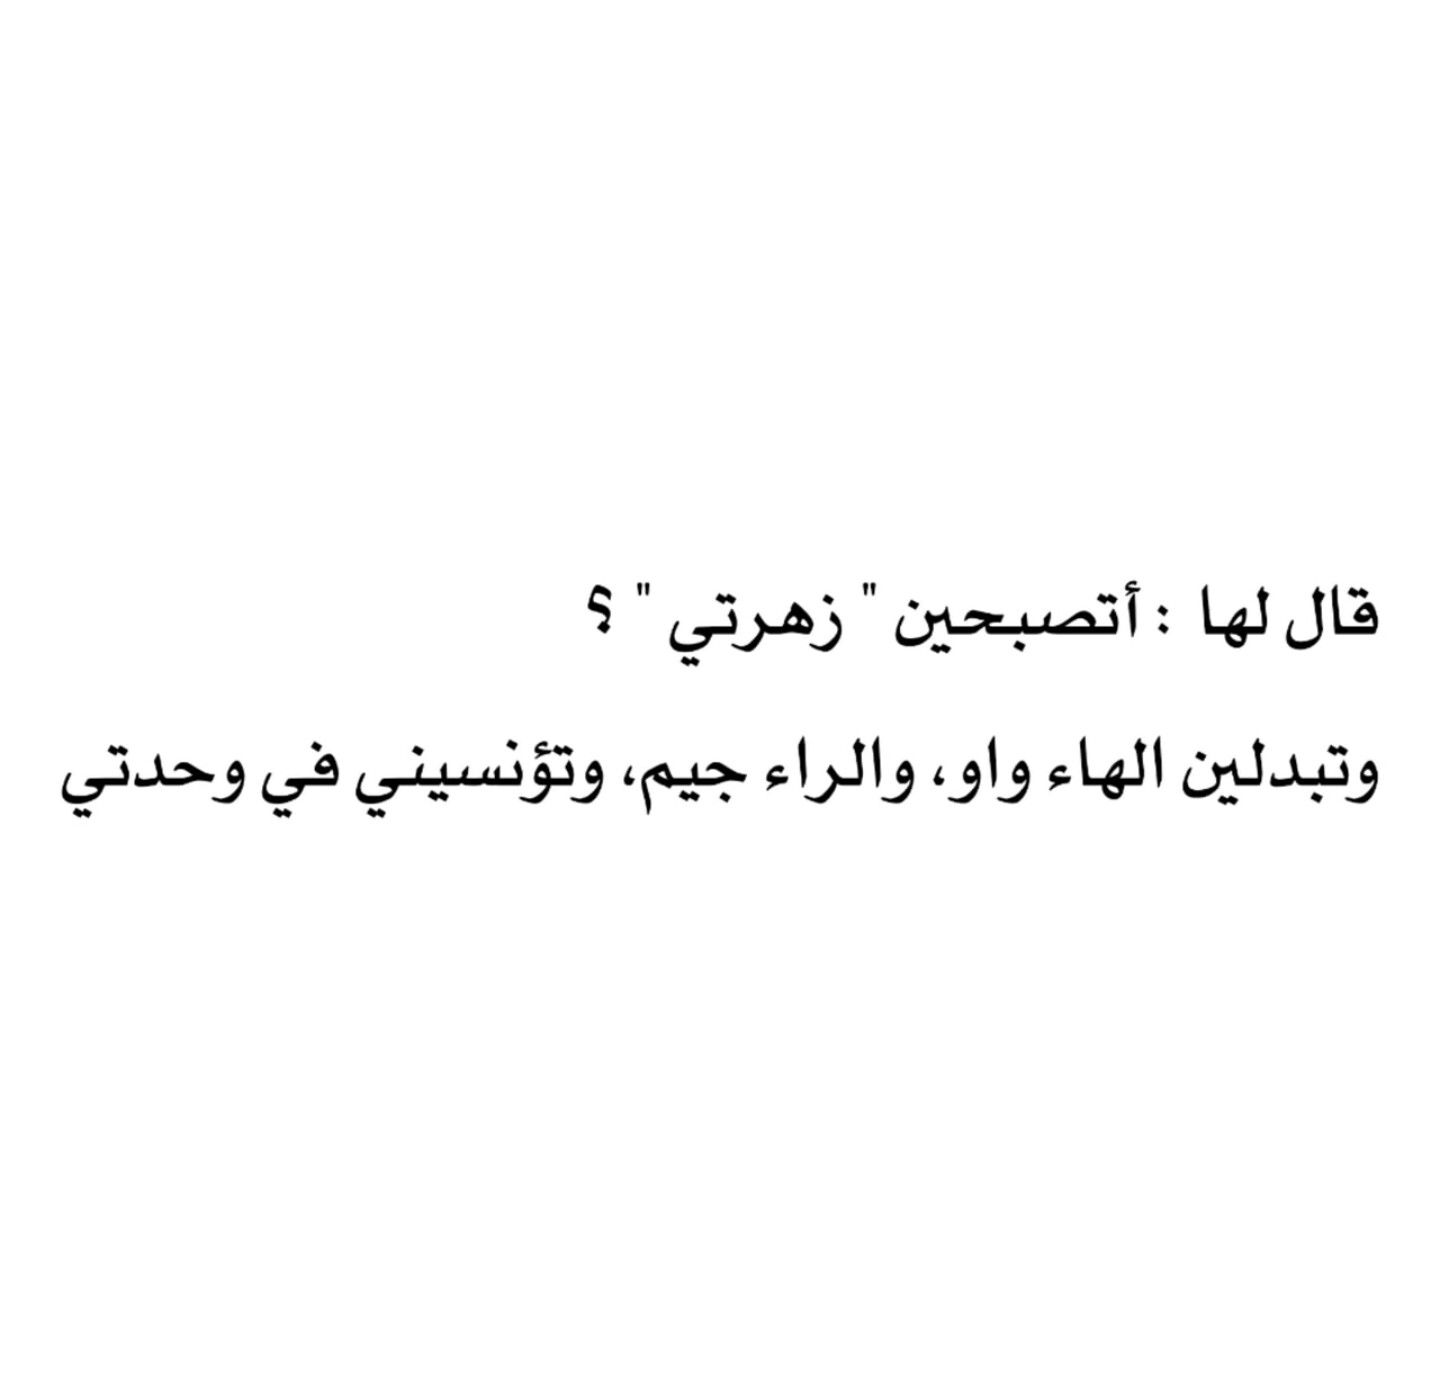 Pin By A R W A On ليتها تقرأ Arabic Love Quotes Pretty Quotes Arabic Quotes